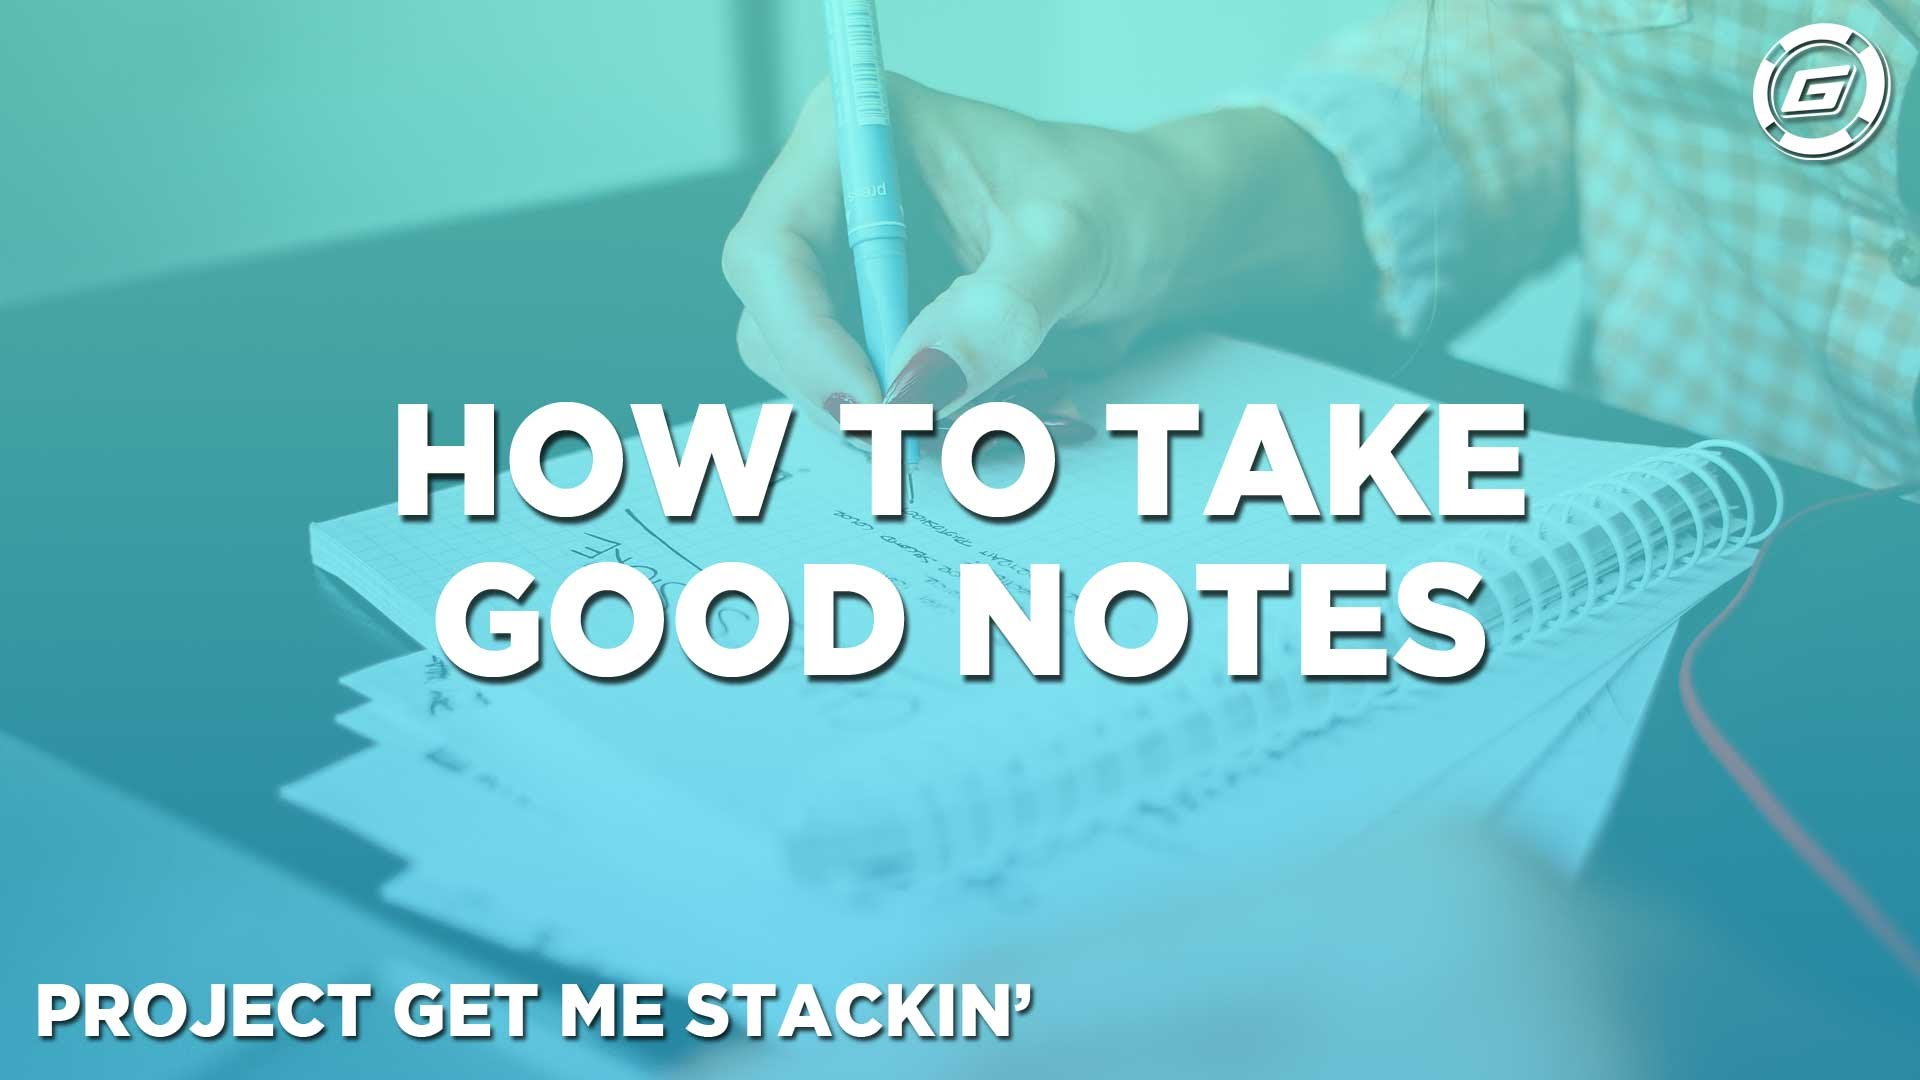 How To Take Good Notes - LESSON #2